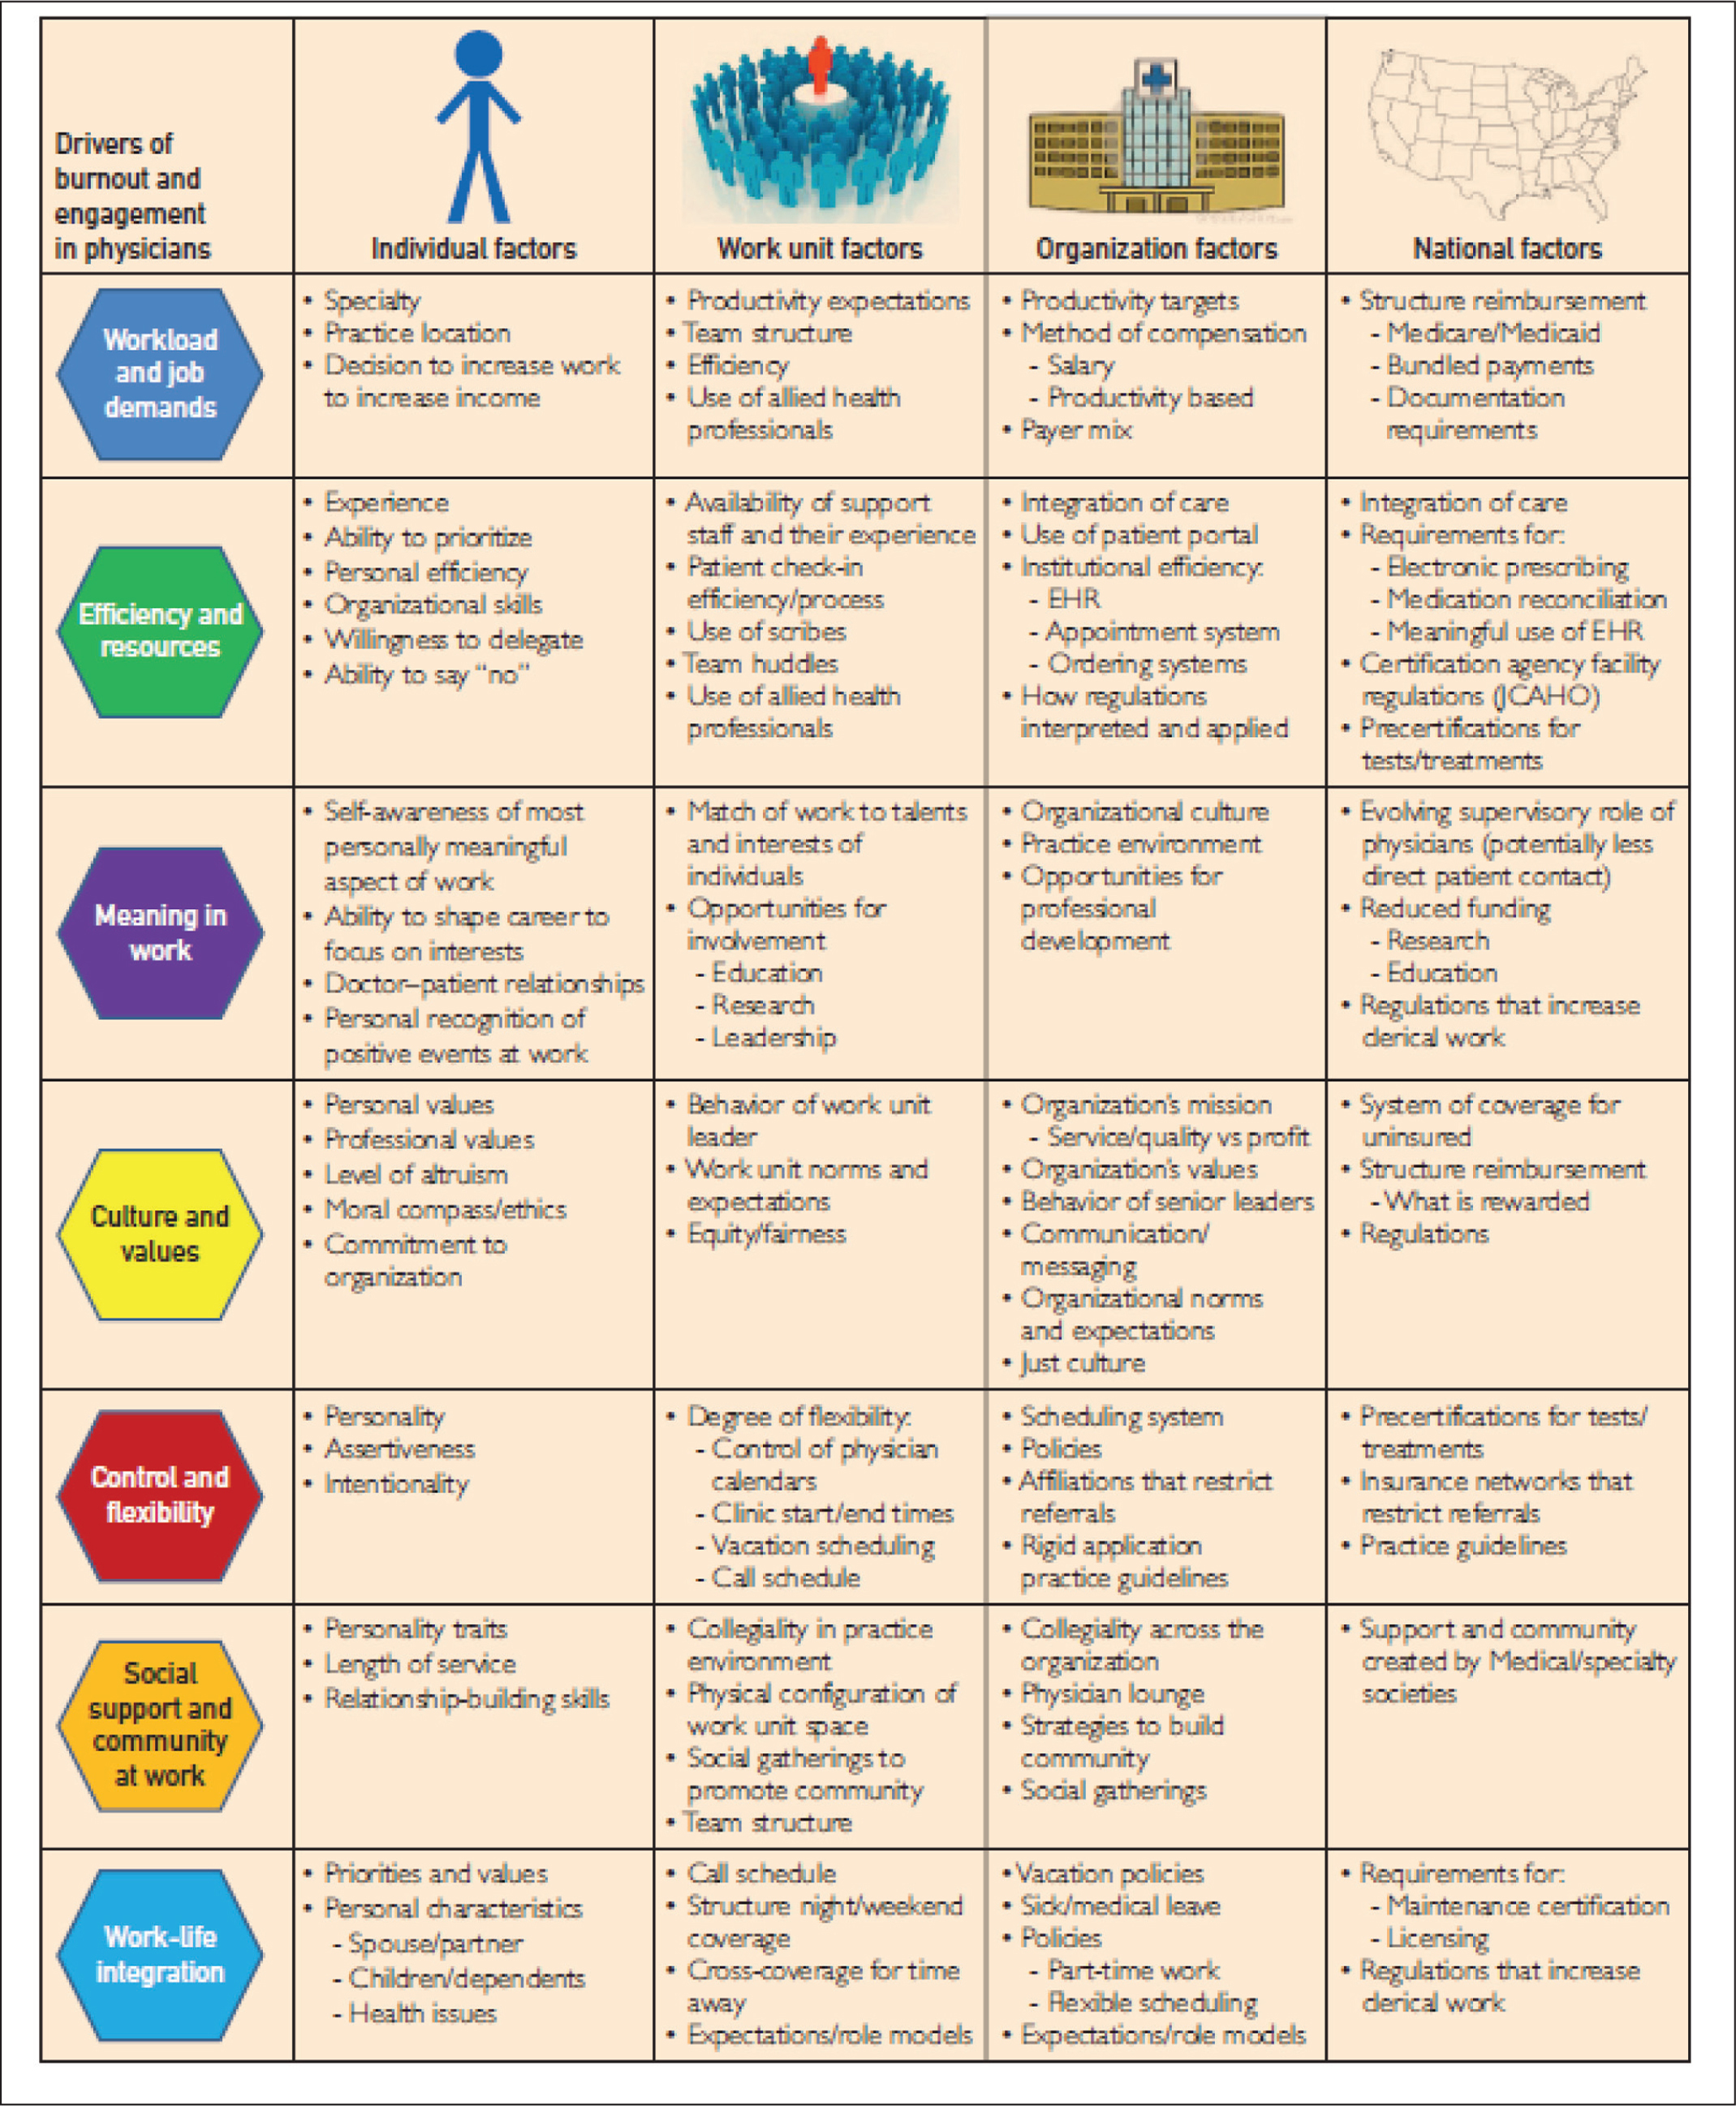 An illustration of drivers of burnout and engagement with examples of individual, work unit, organization, and national factors that influence each driver. Reprinted with permission of Elsevier from Shanafelt and Noseworthy.14